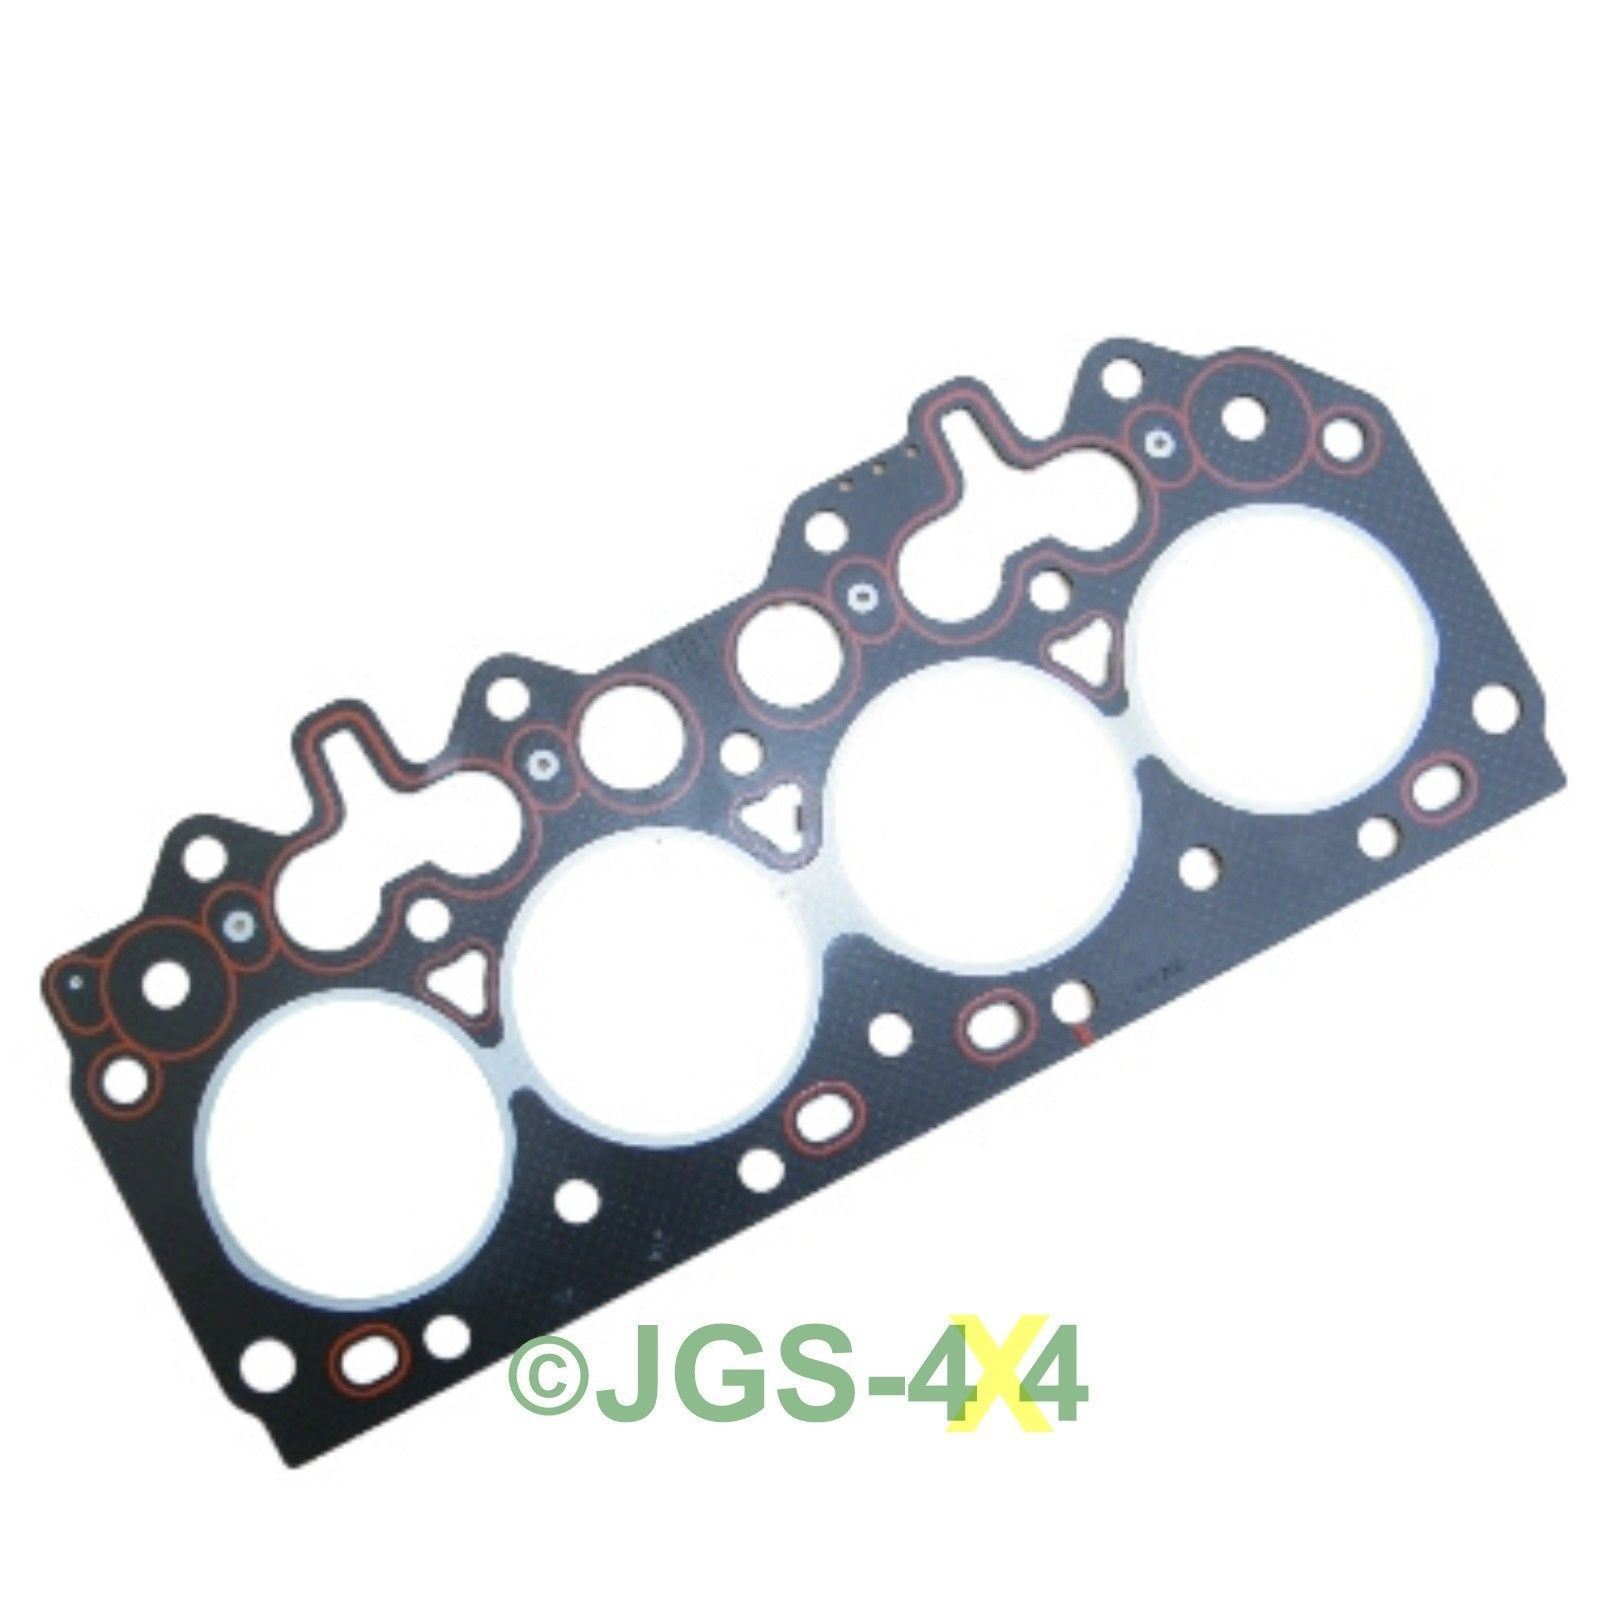 1998 Land Rover Range Rover Head Gasket: Land Rover Defender & Discovery 300TDi Cylinder Head